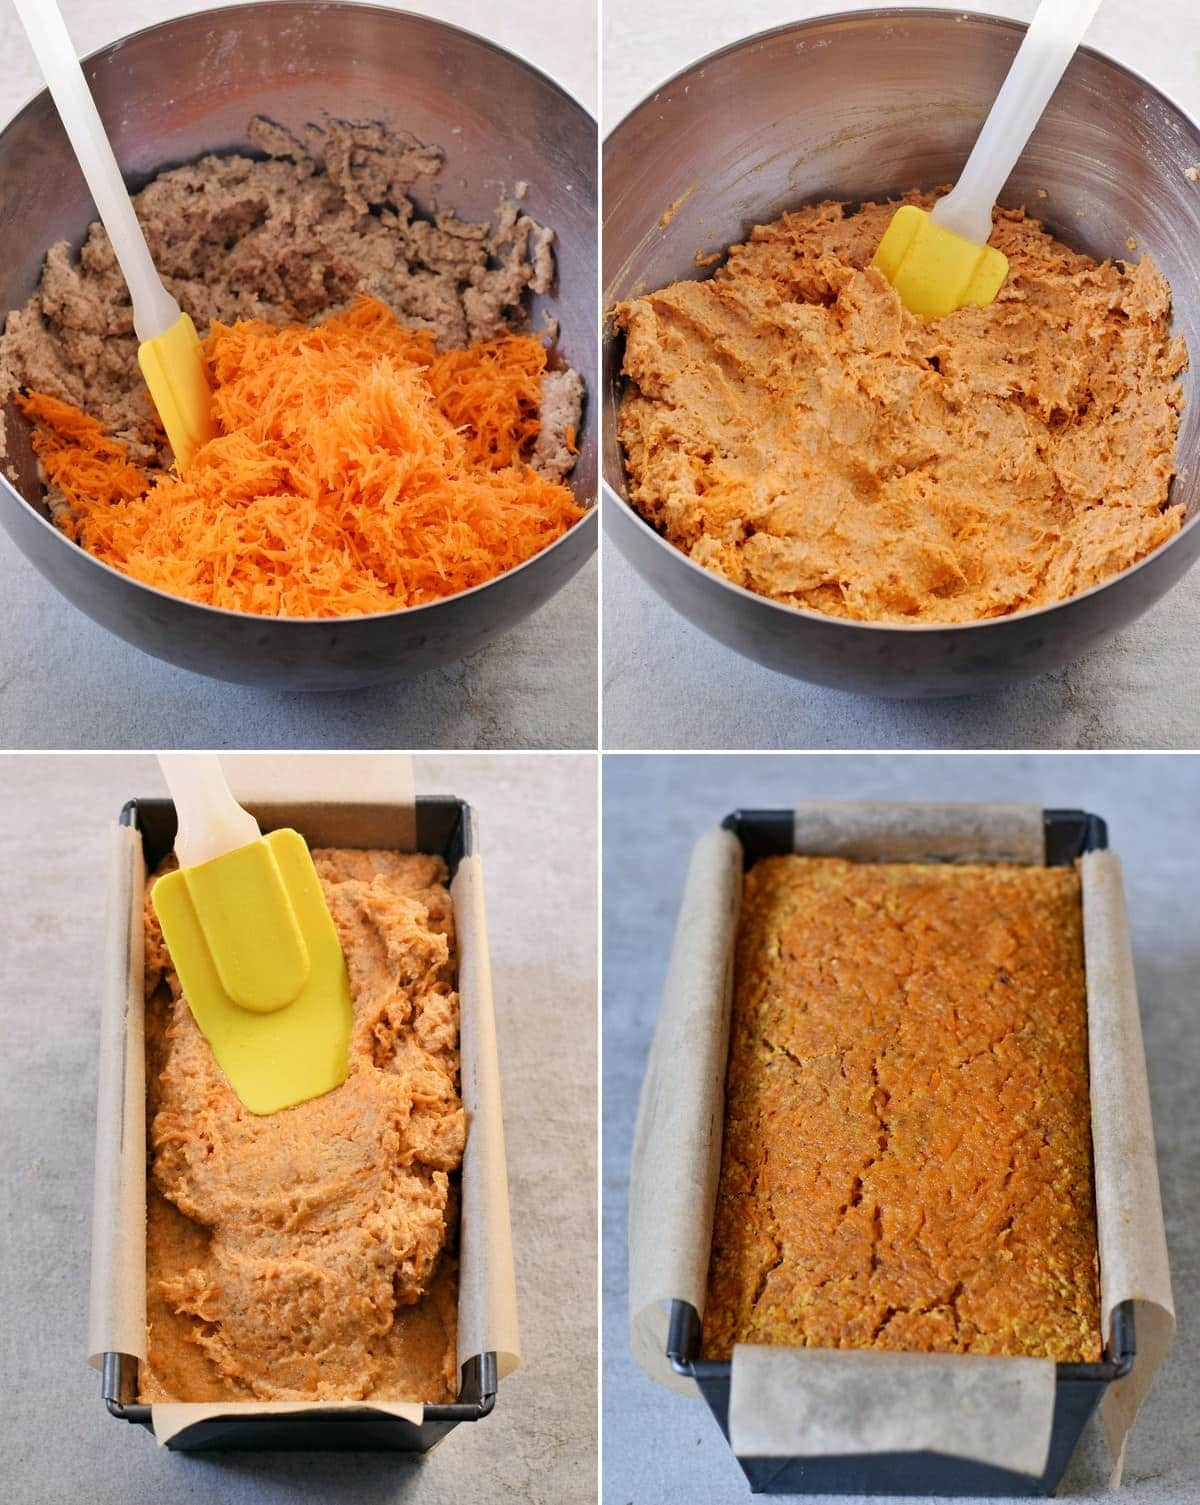 4 process shots of mixing grated carrots with cake batter and adding it to a loaf pan